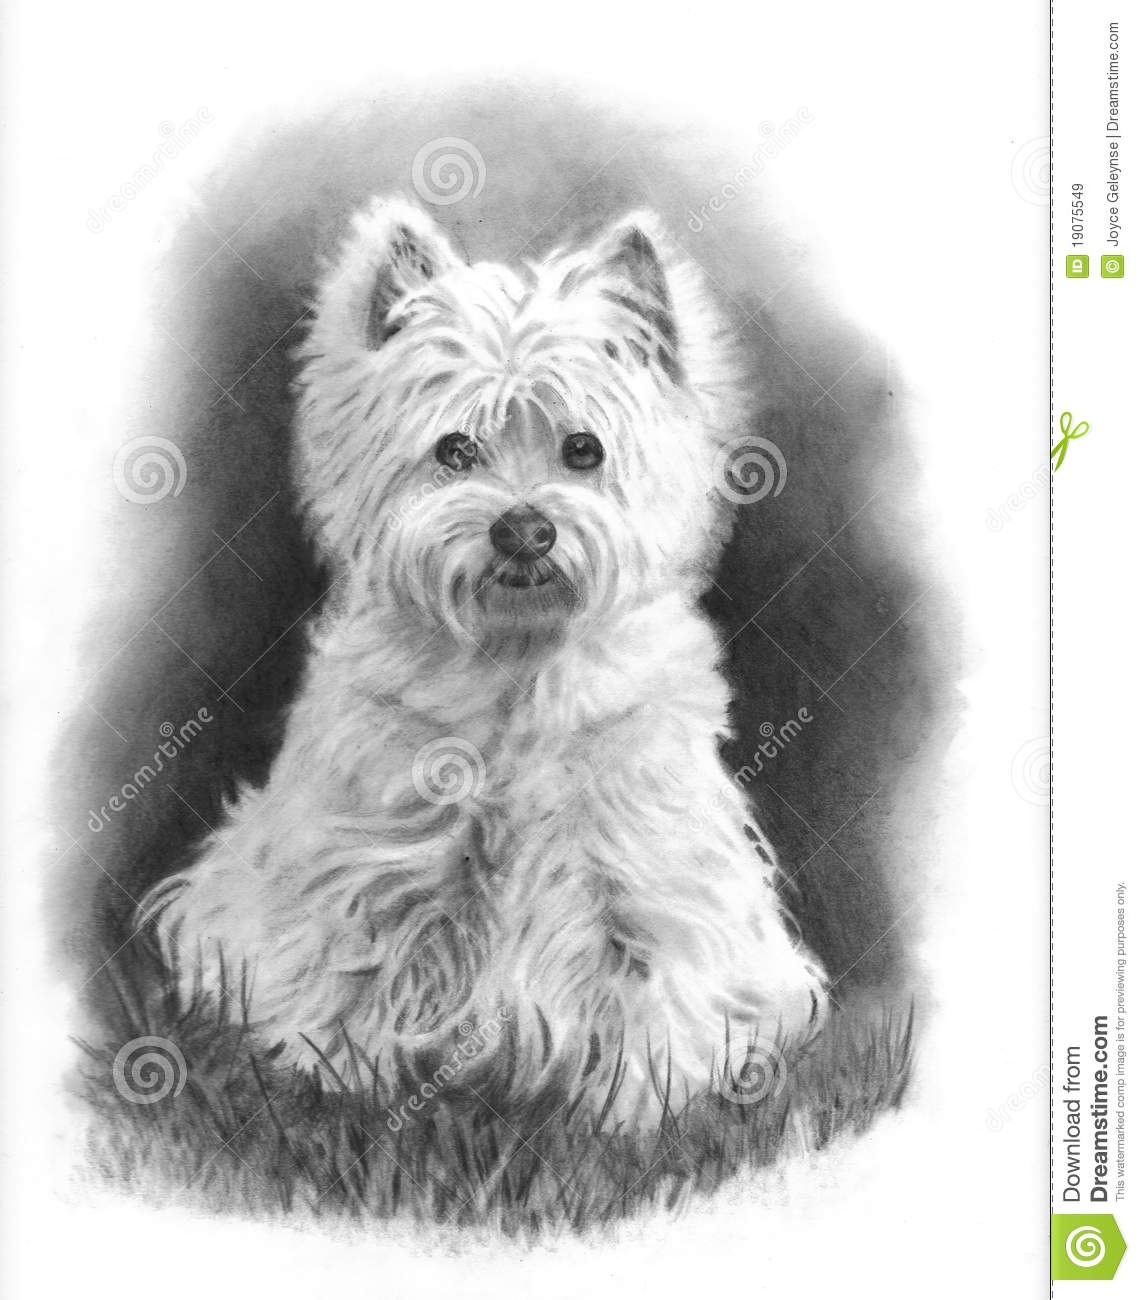 Westie Dog Pencil Drawing Royalty Free Stock Images